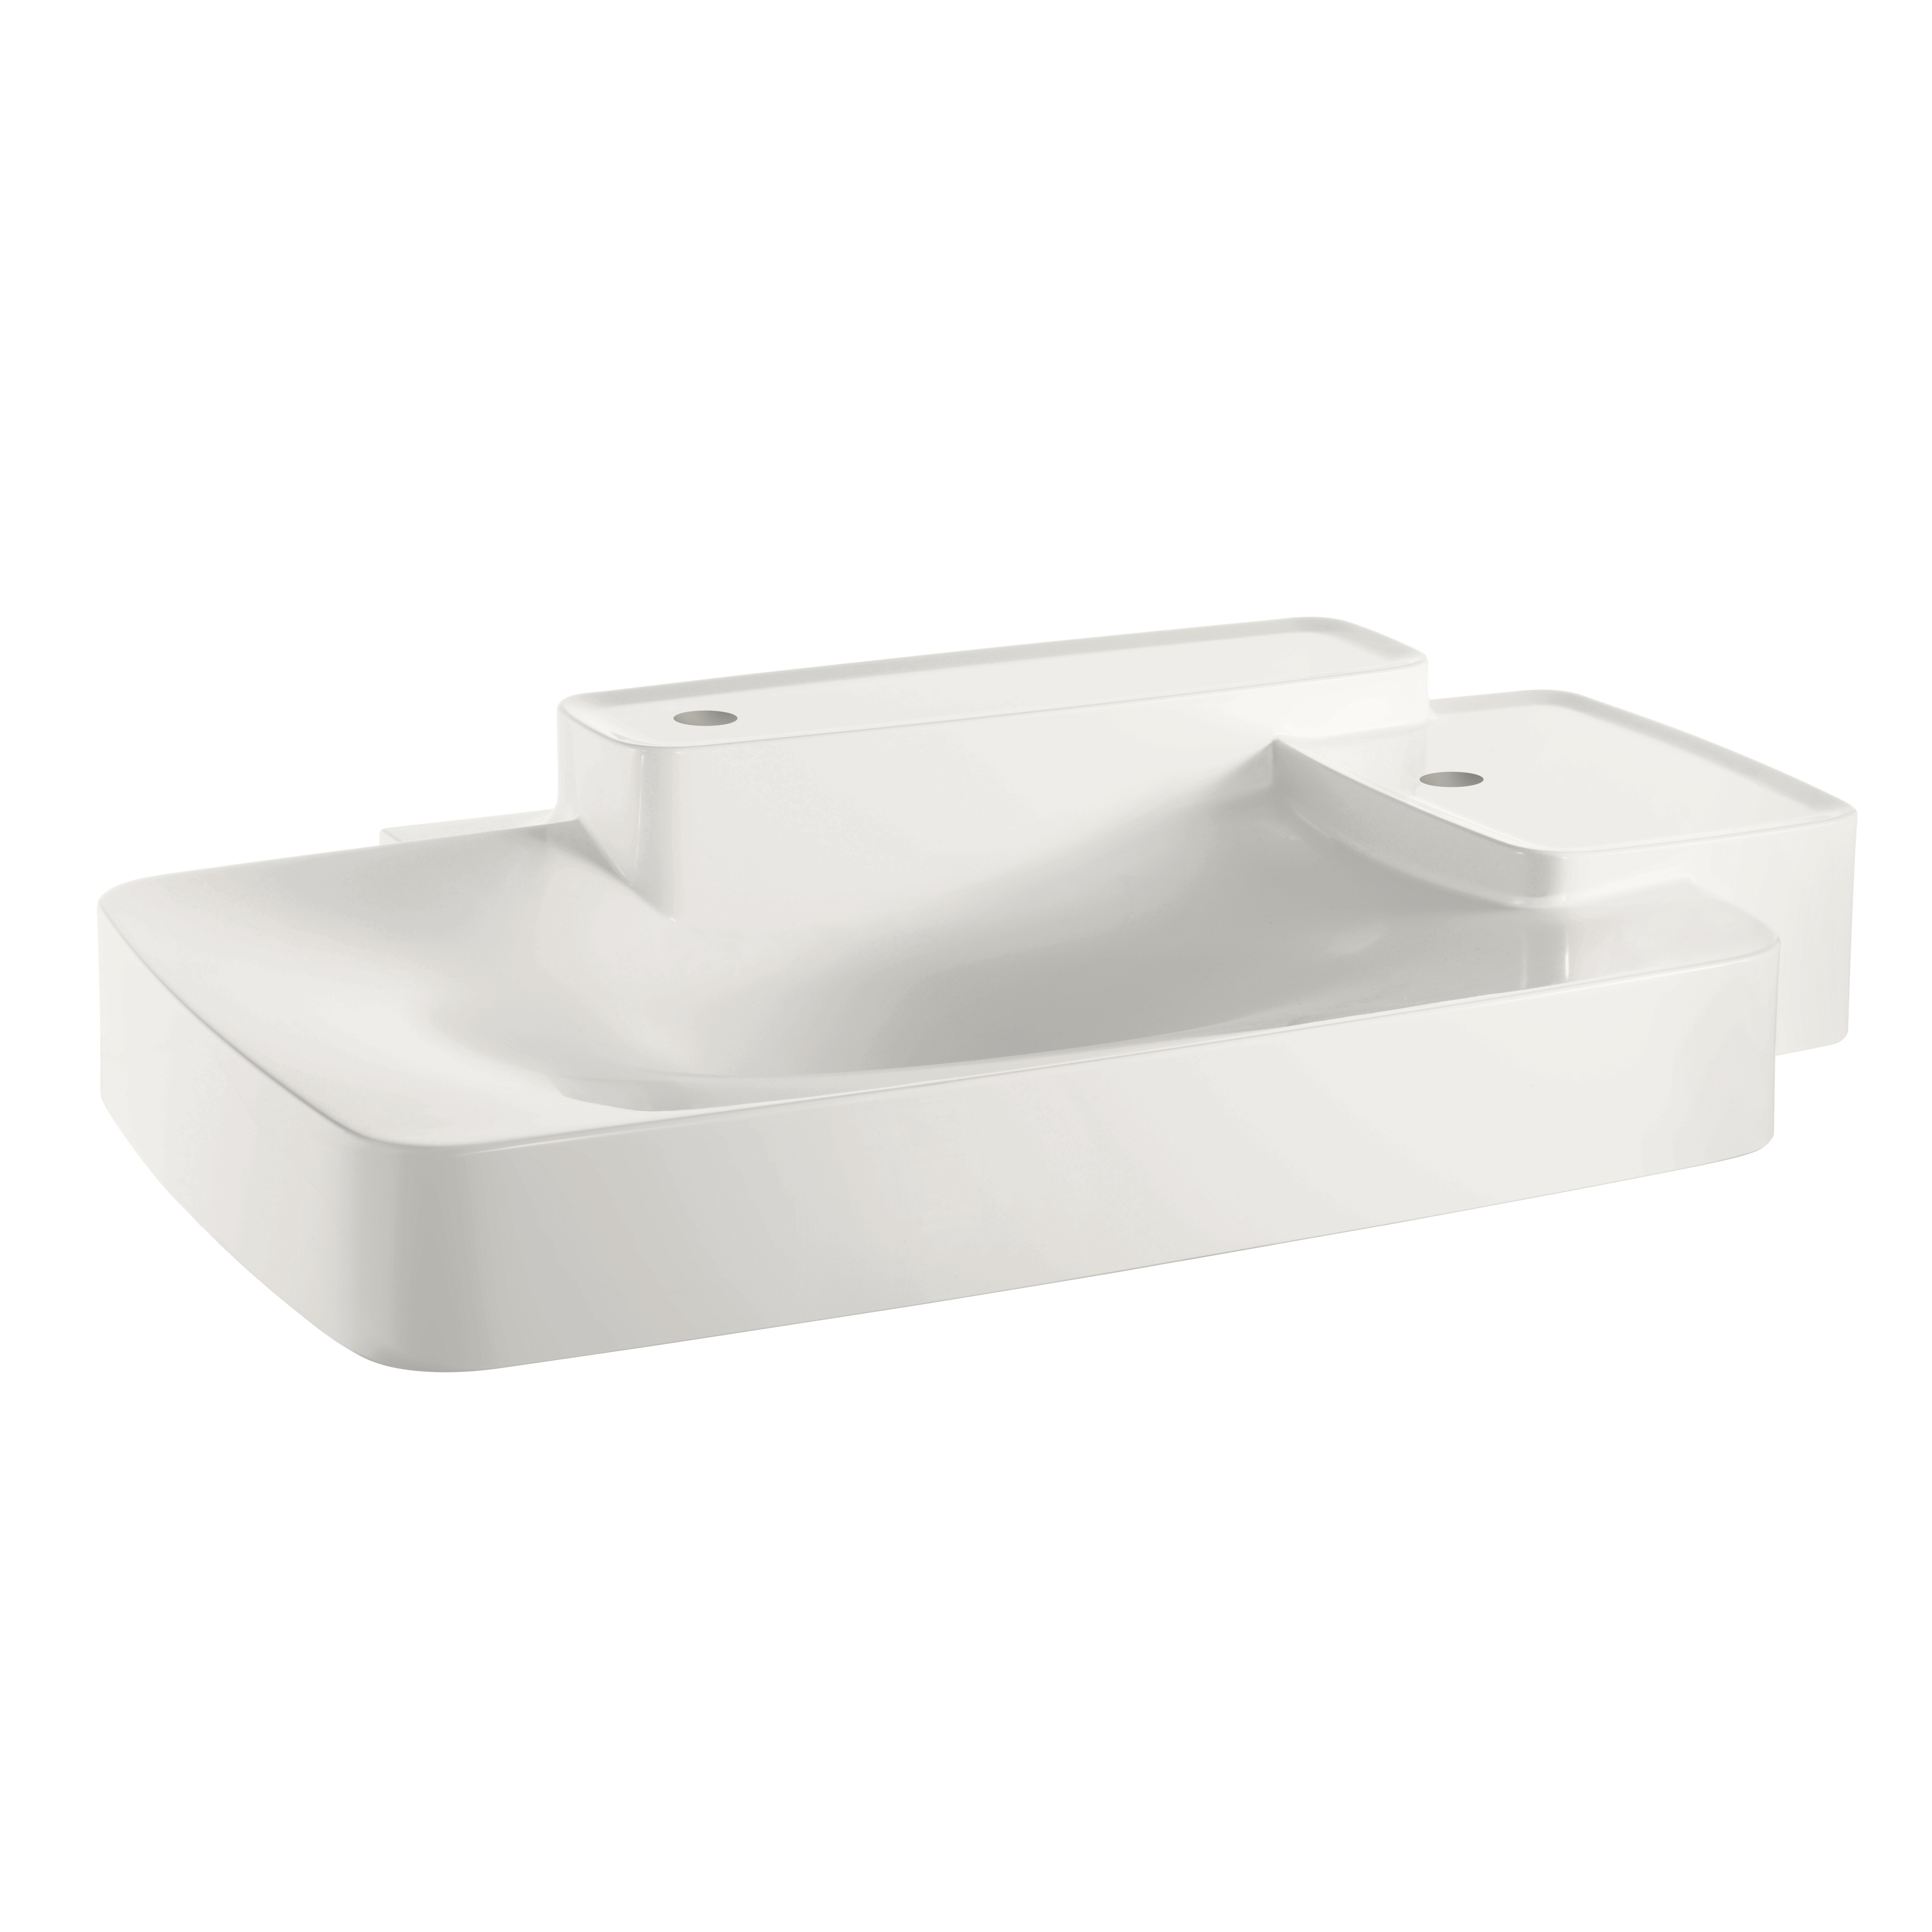 Large Wall Hung Basin : Axor Axor Bouroullec Large Wall Mounted Bathroom Sink with Two Shelves ...